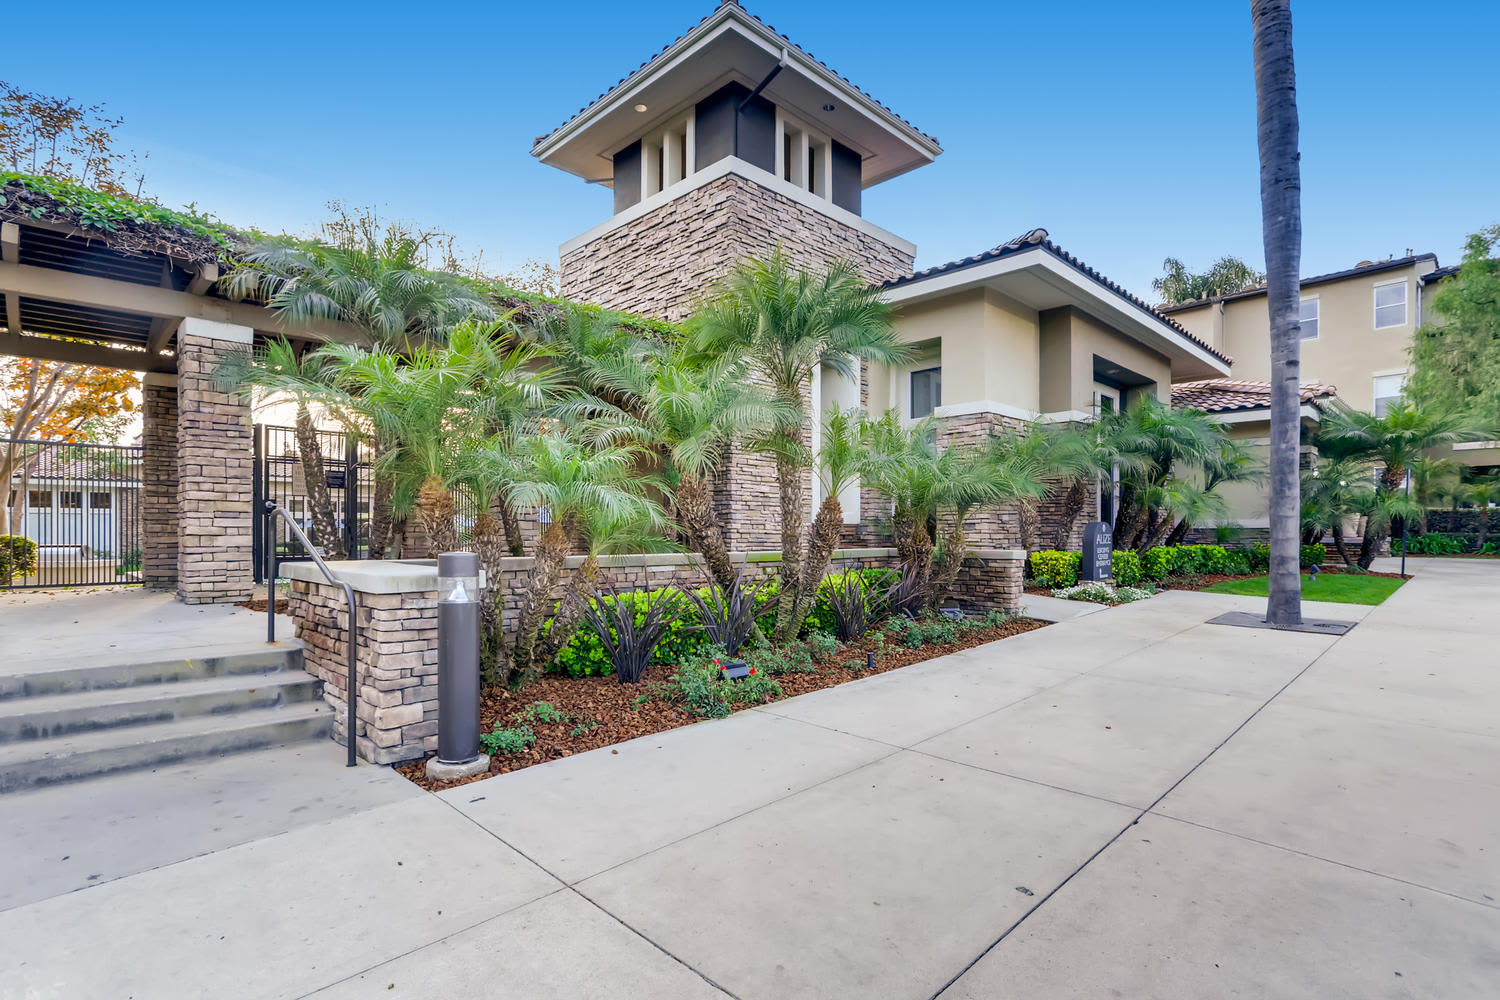 Learn about our neighborhood at Alize at Aliso Viejo Apartment Homes in Aliso Viejo, CA on our website